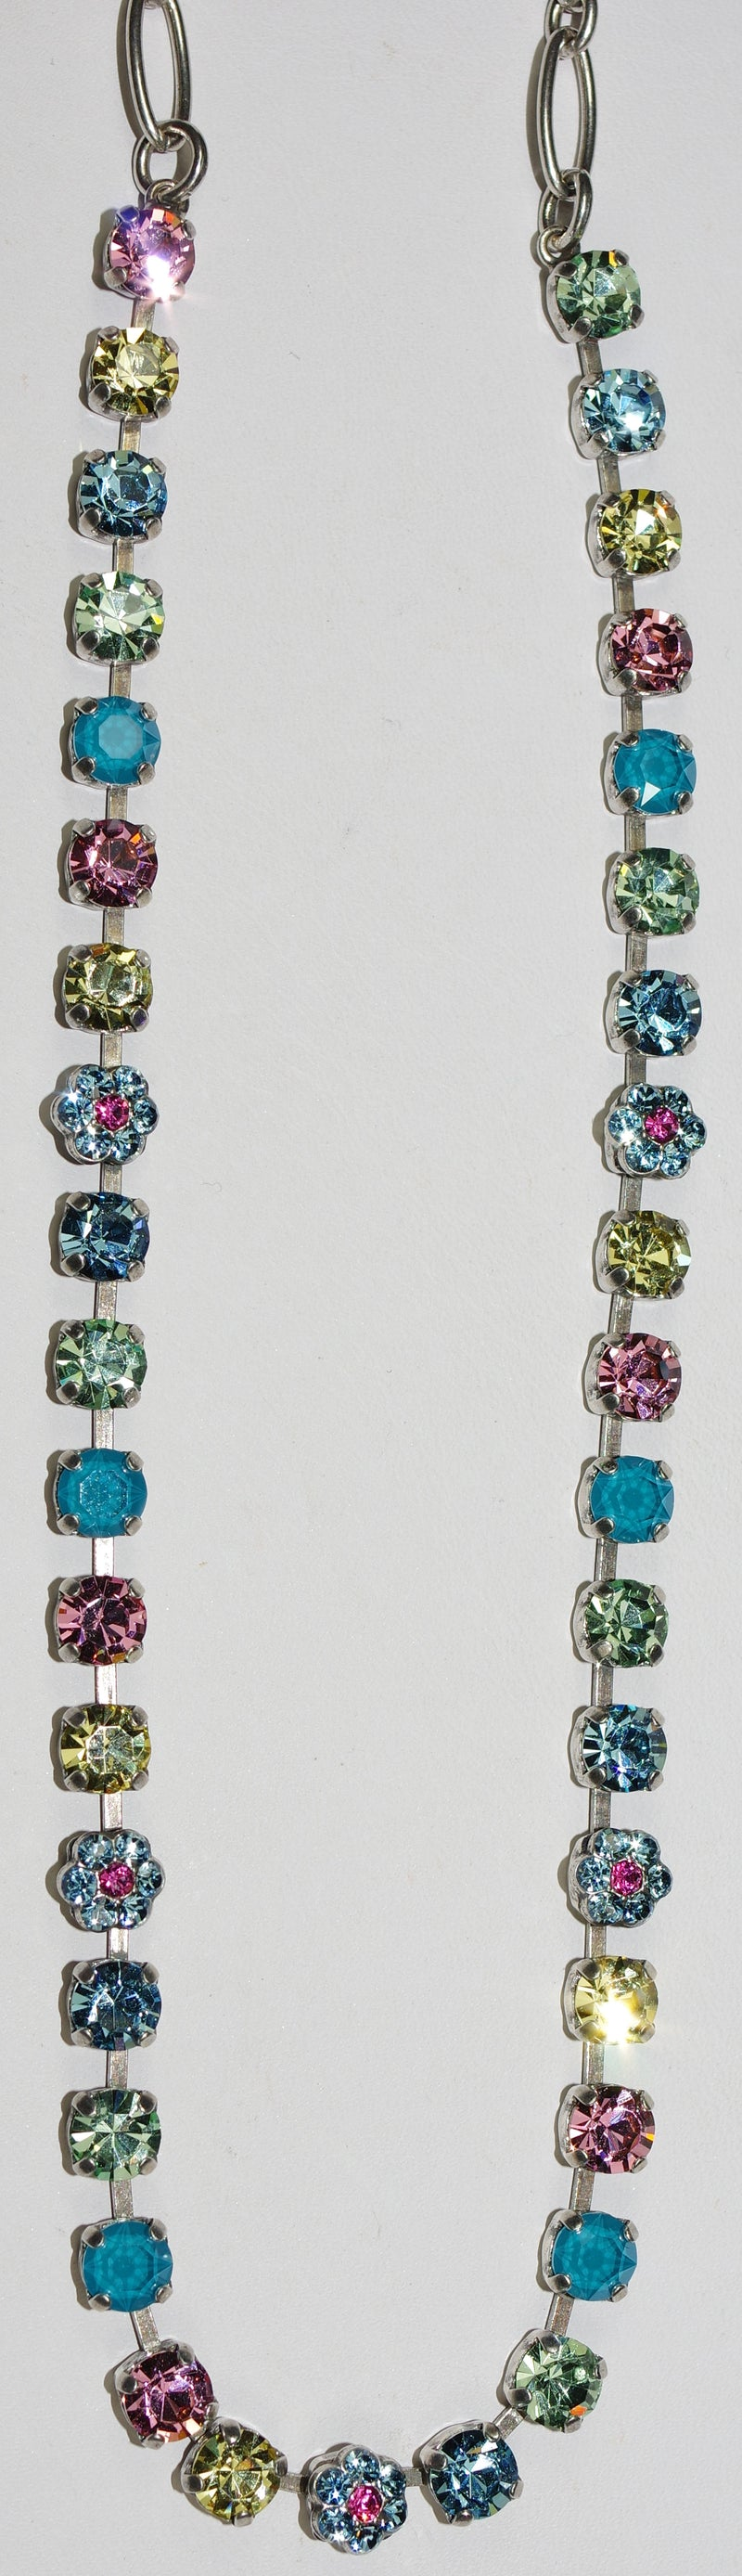 "MARIANA NECKLACE SPRING FLOWERS: green, blue, pink, yellow 1/4"" stones in silver setting, 18"" adjustable chain"